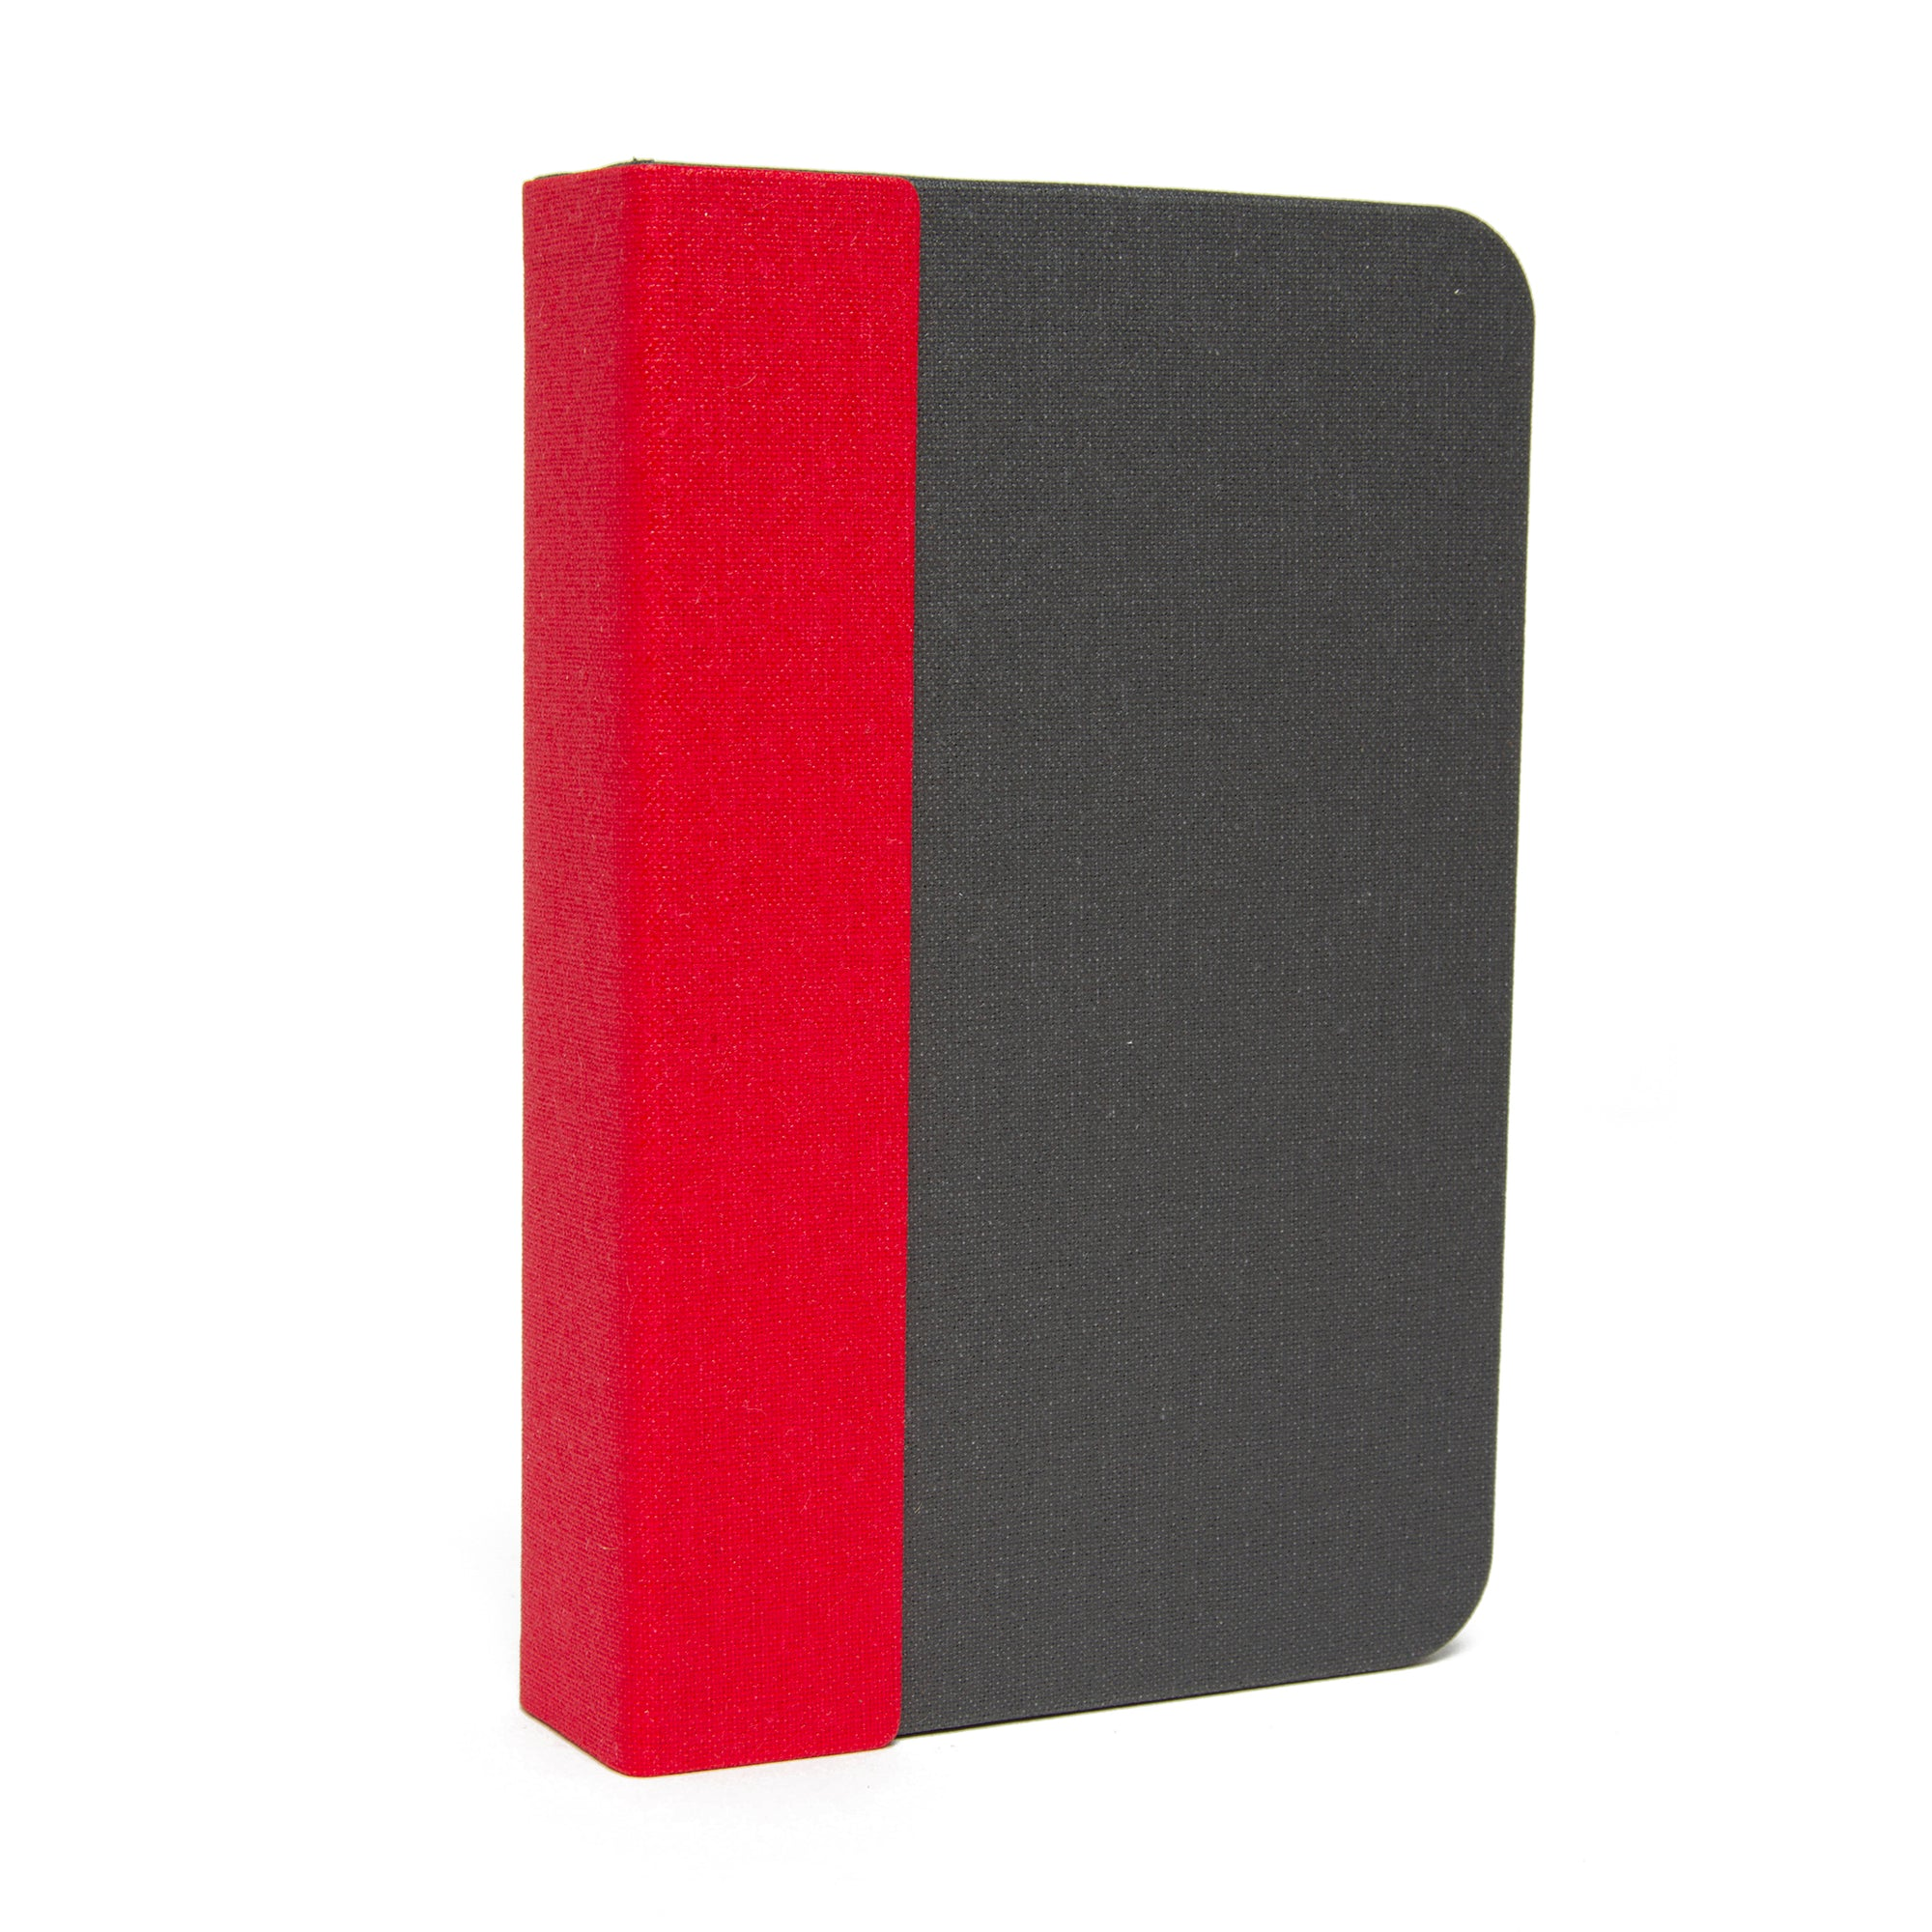 Lumio Mini Book Light and Charger- Grey with Red Spine | Getty Store